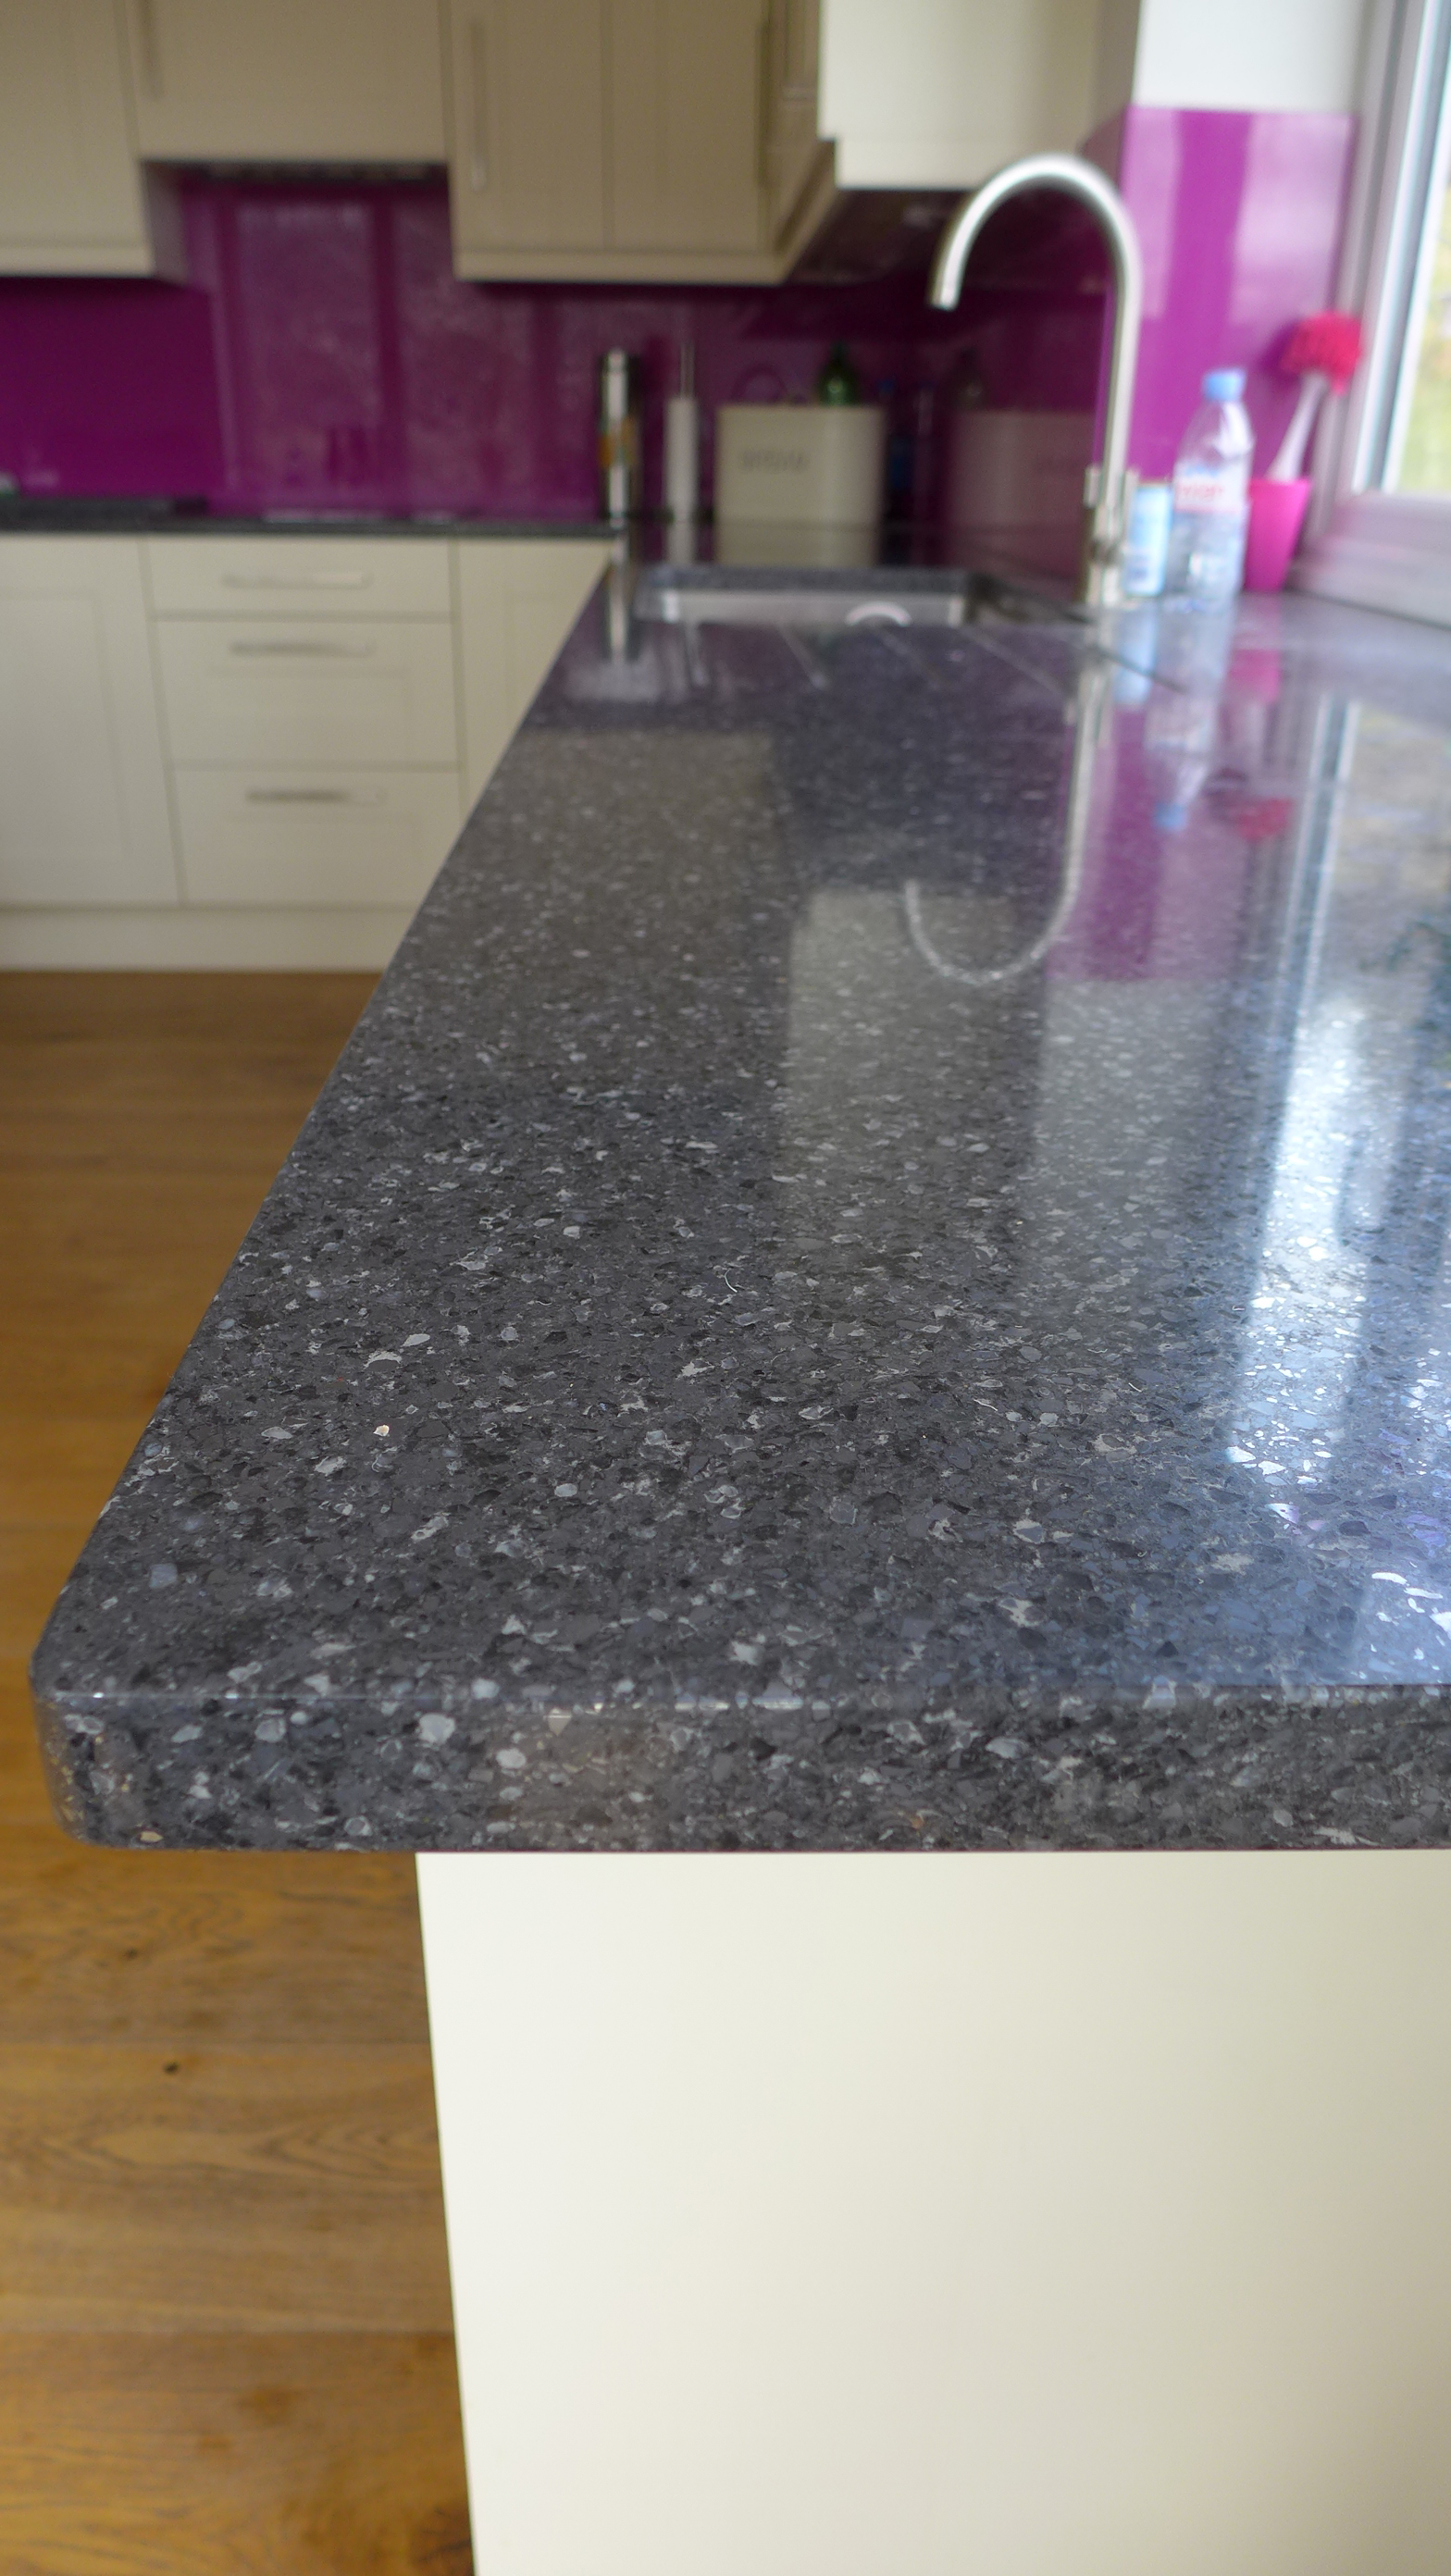 silver quartz kitchen worktop